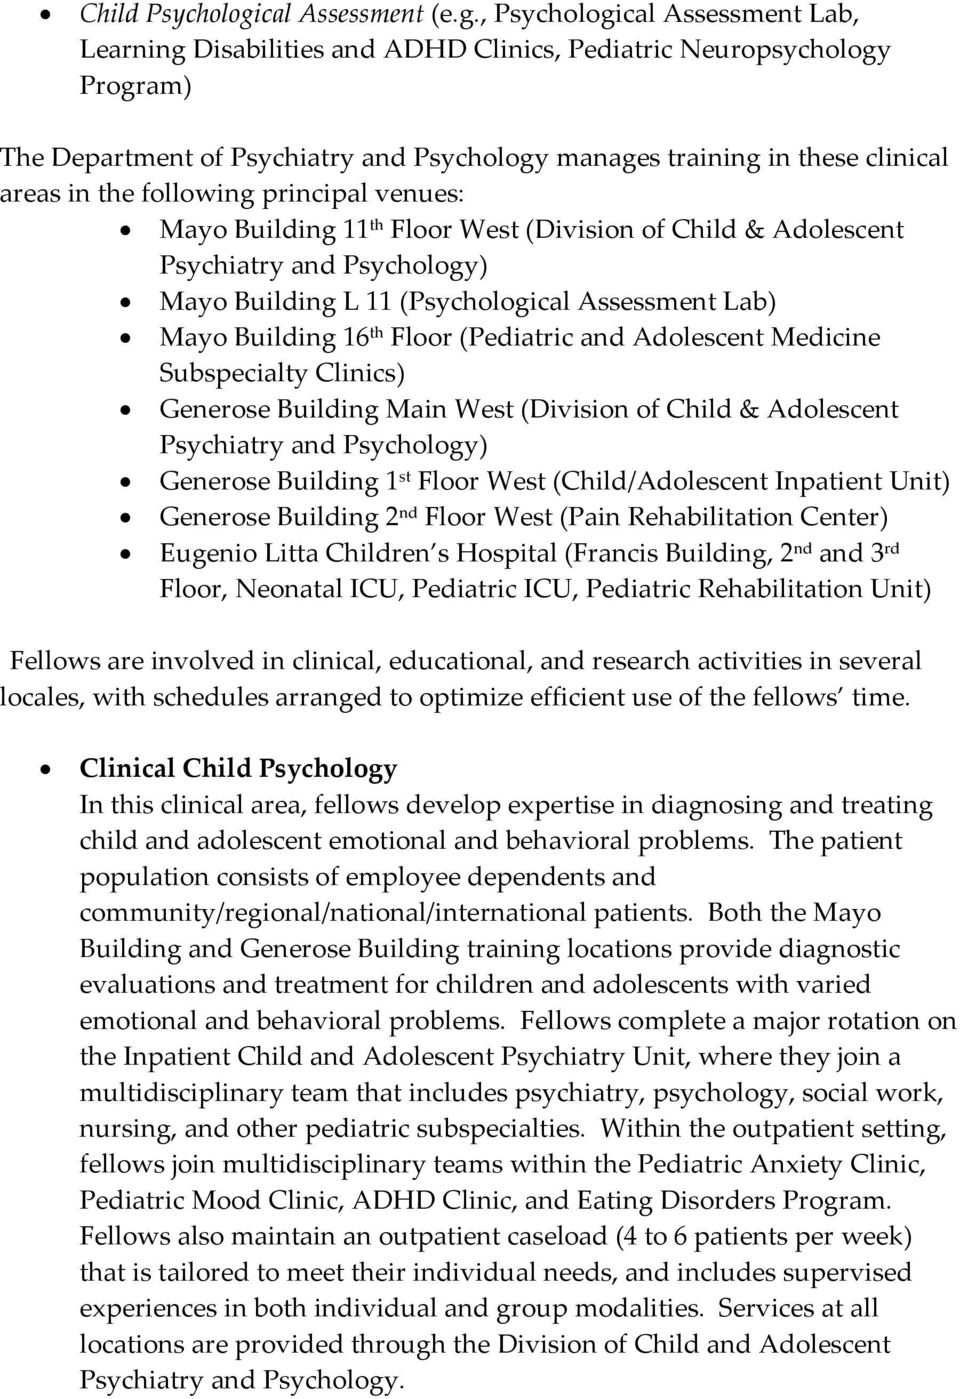 , Psychological Assessment Lab, Learning Disabilities and ADHD Clinics, Pediatric Neuropsychology Program) The Department of Psychiatry and Psychology manages training in these clinical areas in the